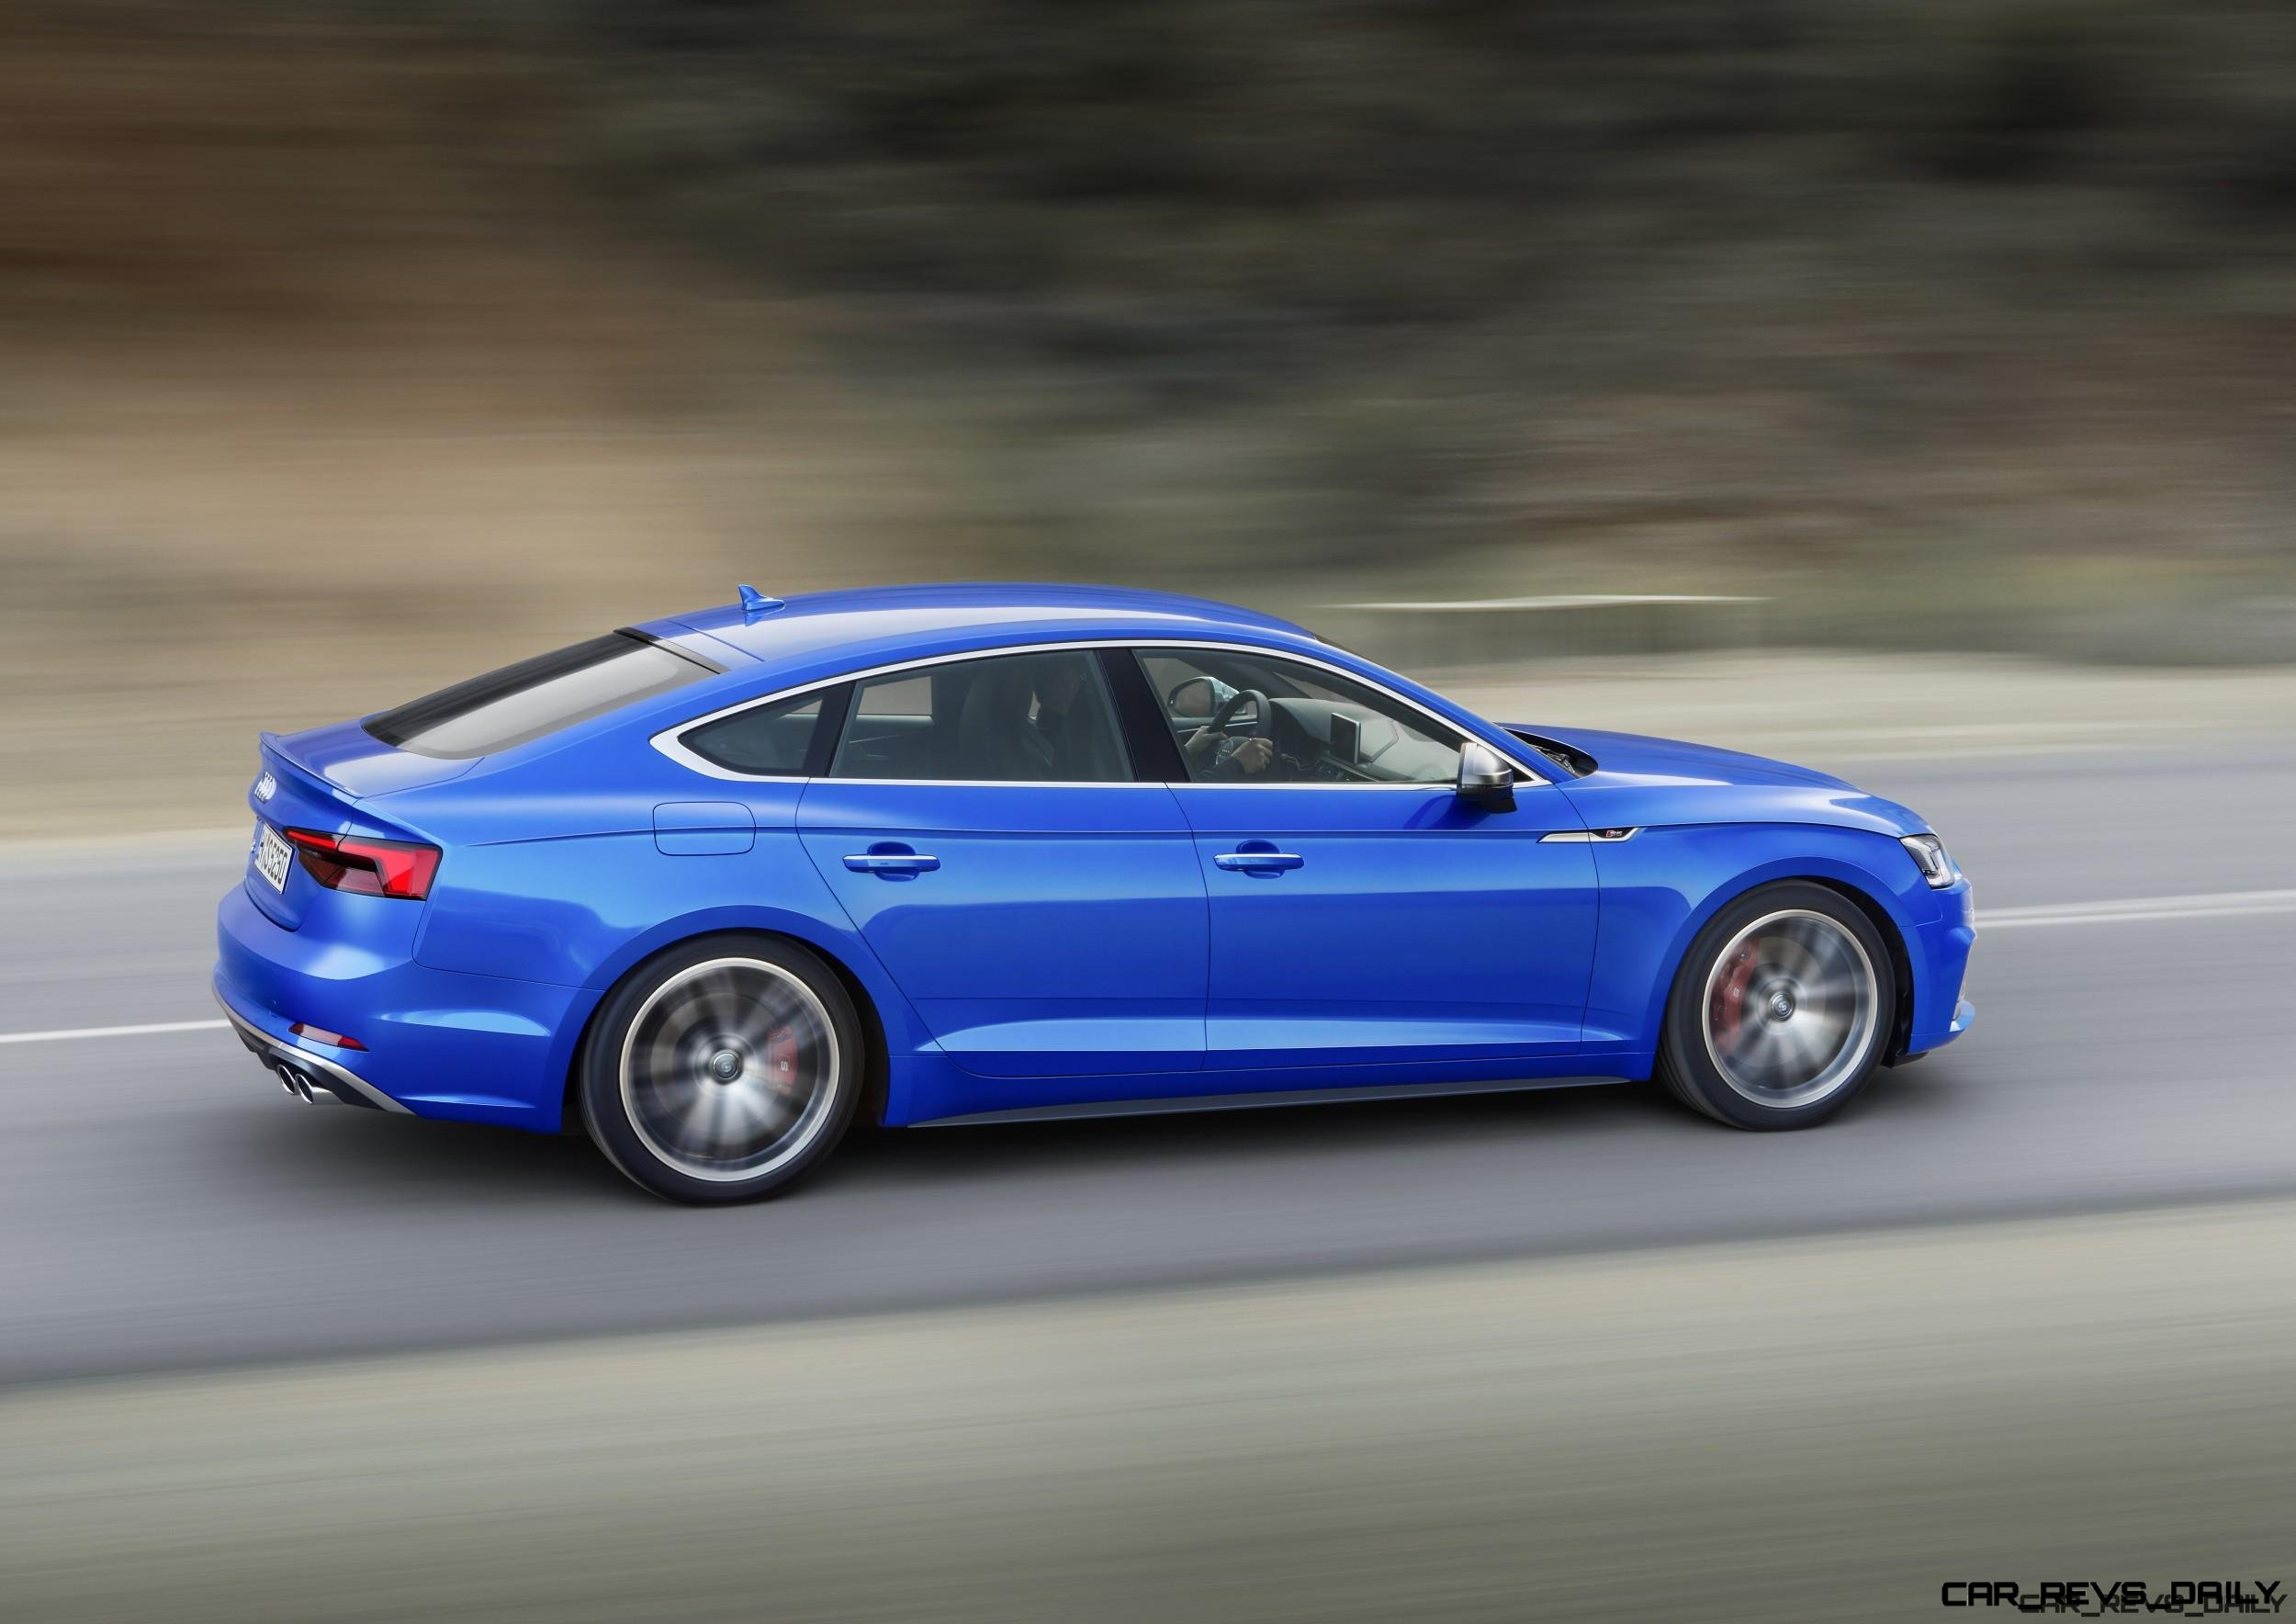 2018 Audi A5 and S5 Sportback - 4-Door Coupes Coming to USA!